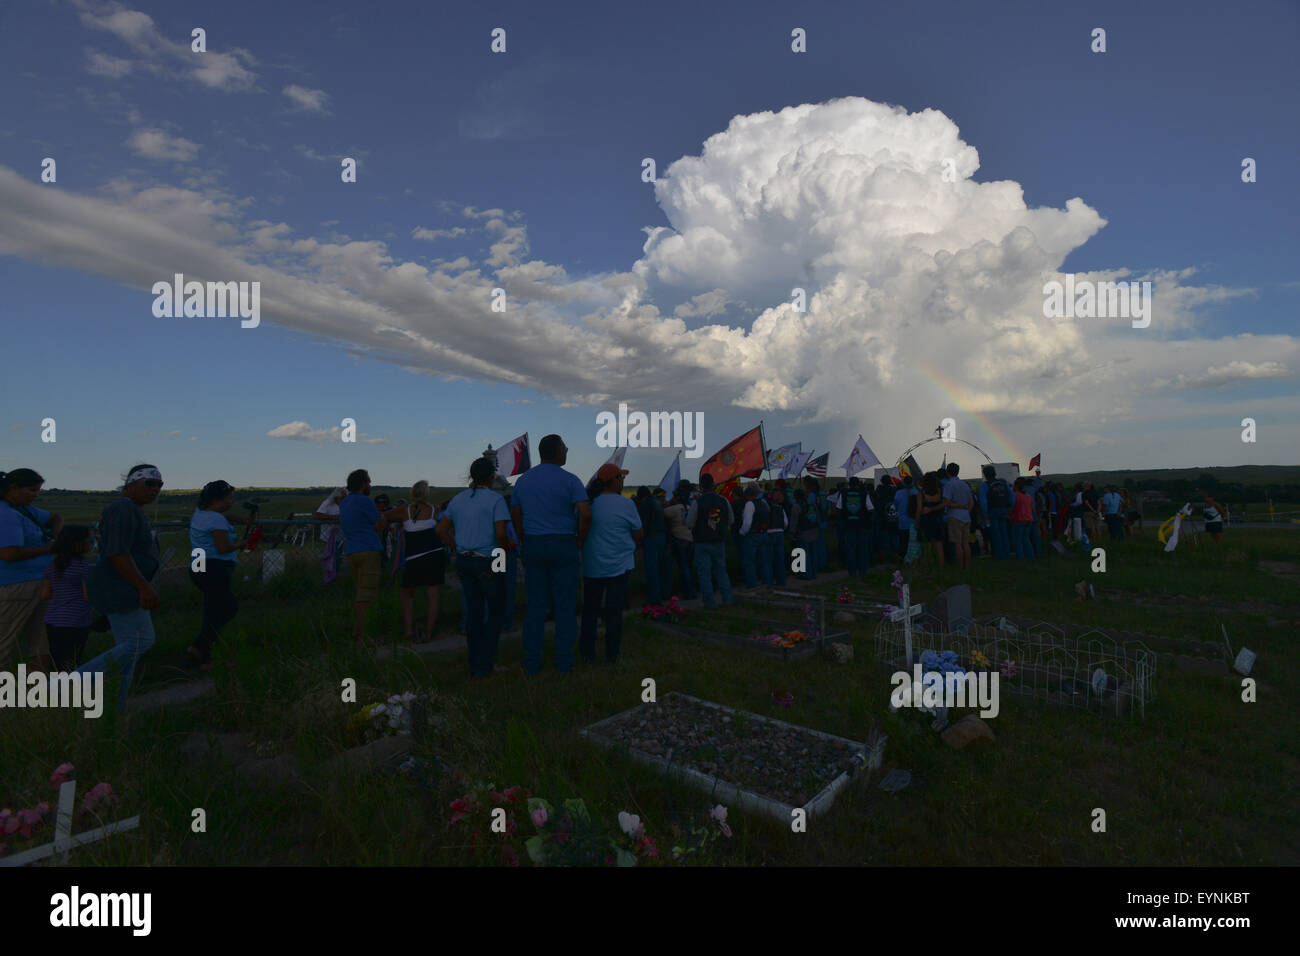 Pine Ridge Reservation, South Dakota, US. 1st Aug, 2015. Hundreds of Lakota Riders from all over the US and Canada, Stock Photo